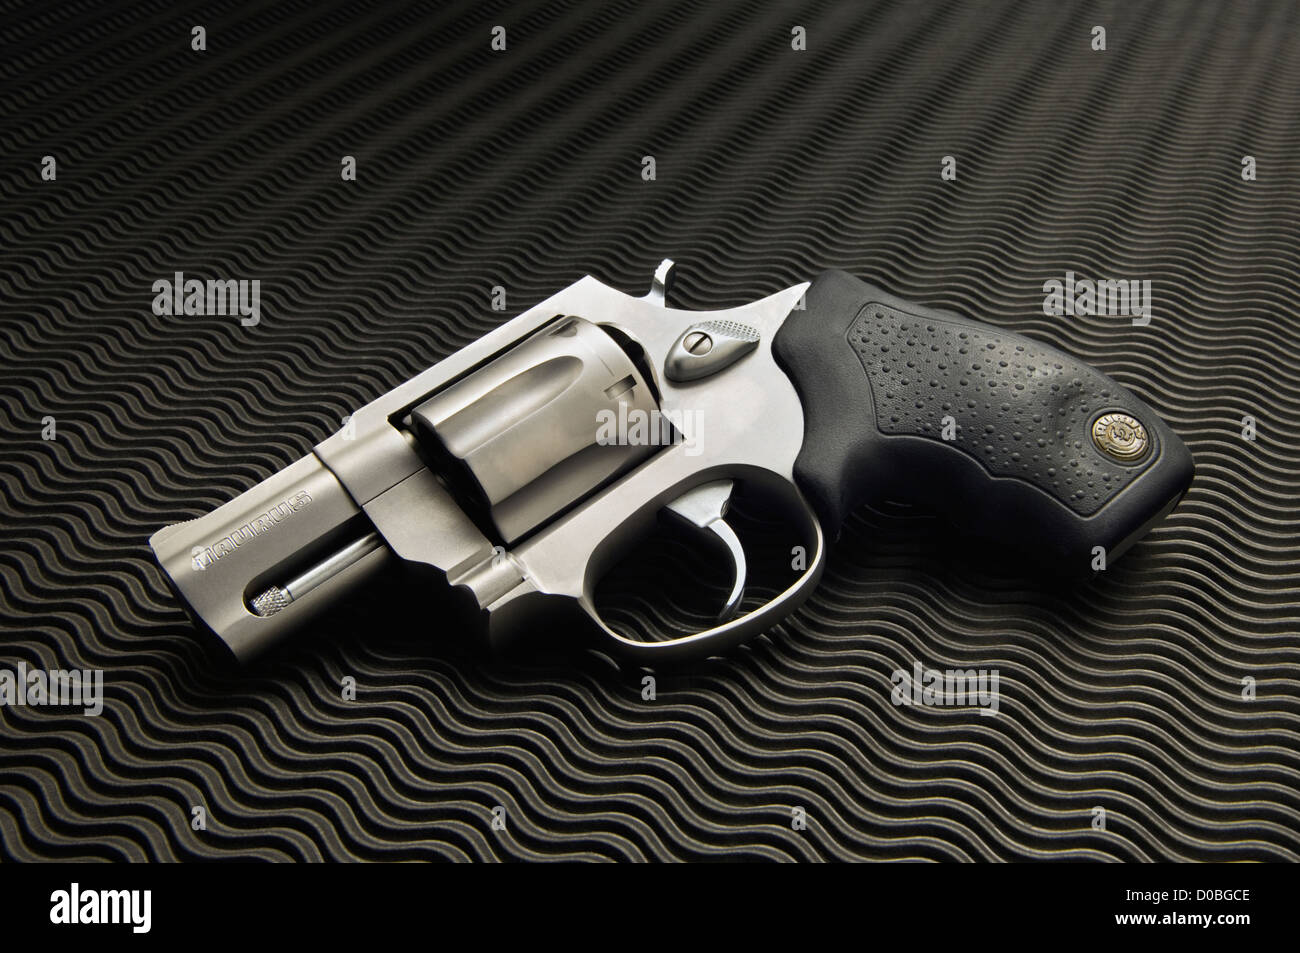 Taurus Model 856 Snub Nose 38 Special Revolver Stock Photo: 51885470